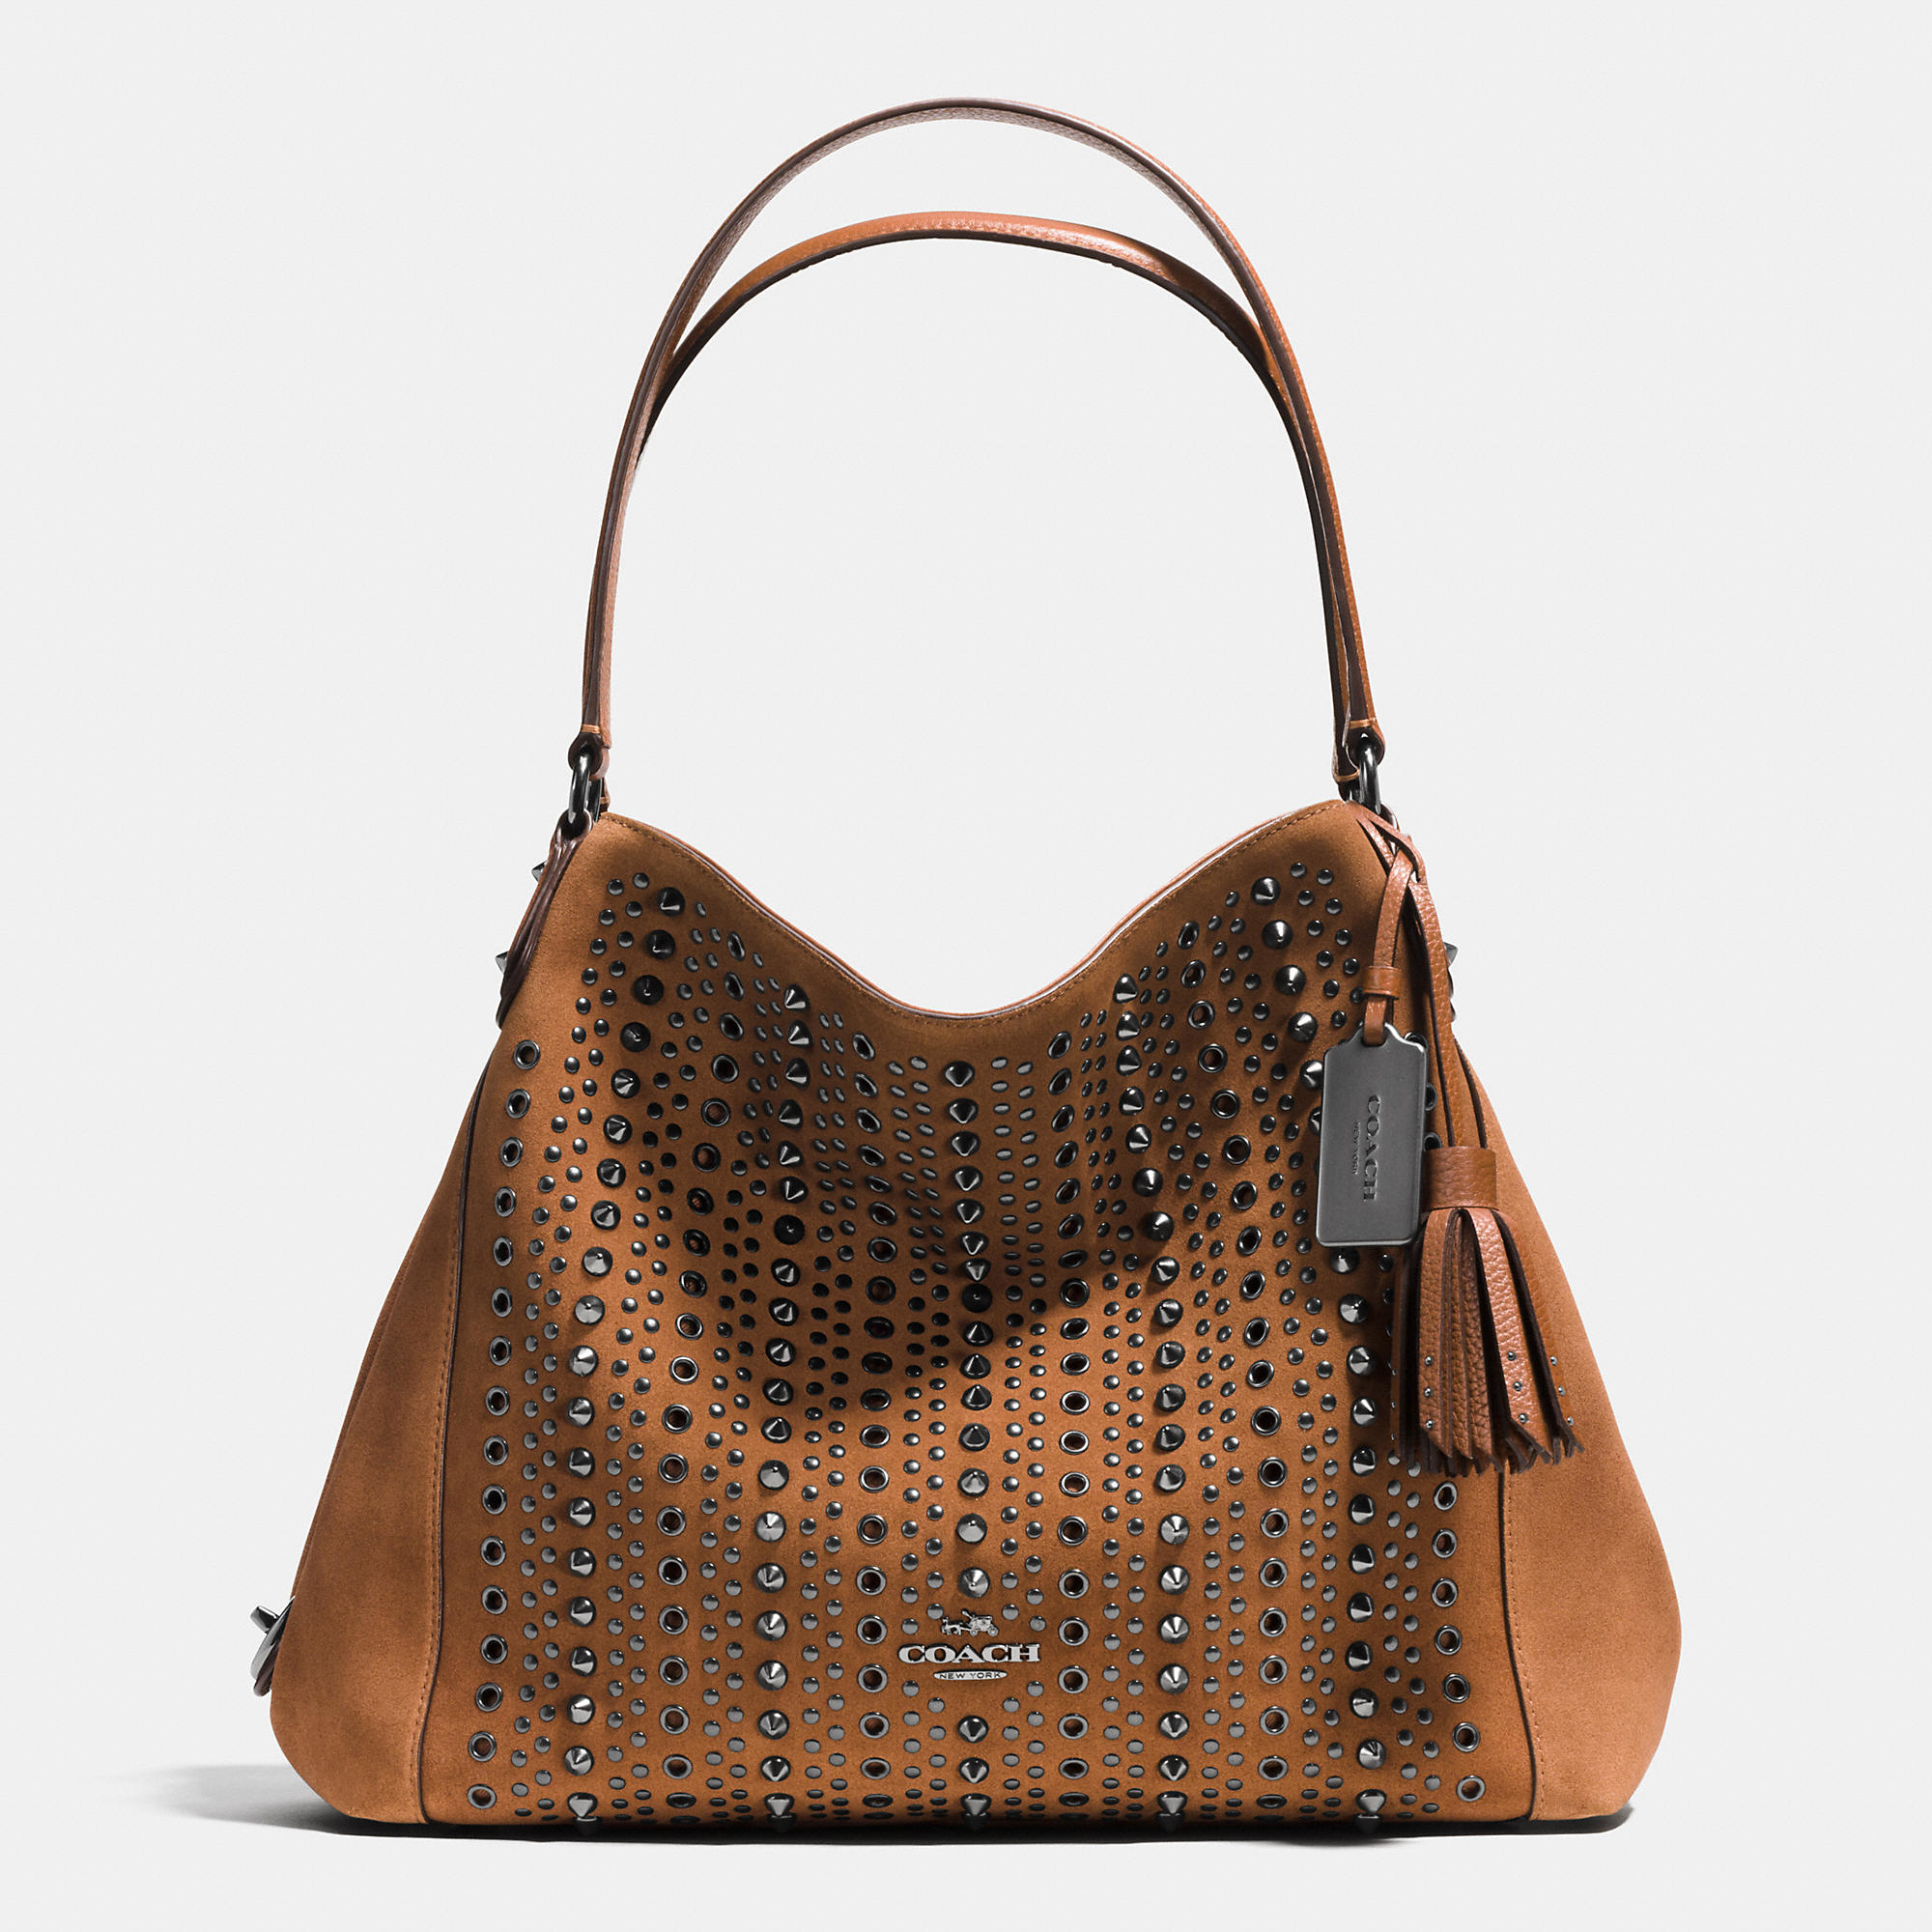 lyst coach all over studs and grommets edie shoulder bag 31 in suede in brown. Black Bedroom Furniture Sets. Home Design Ideas